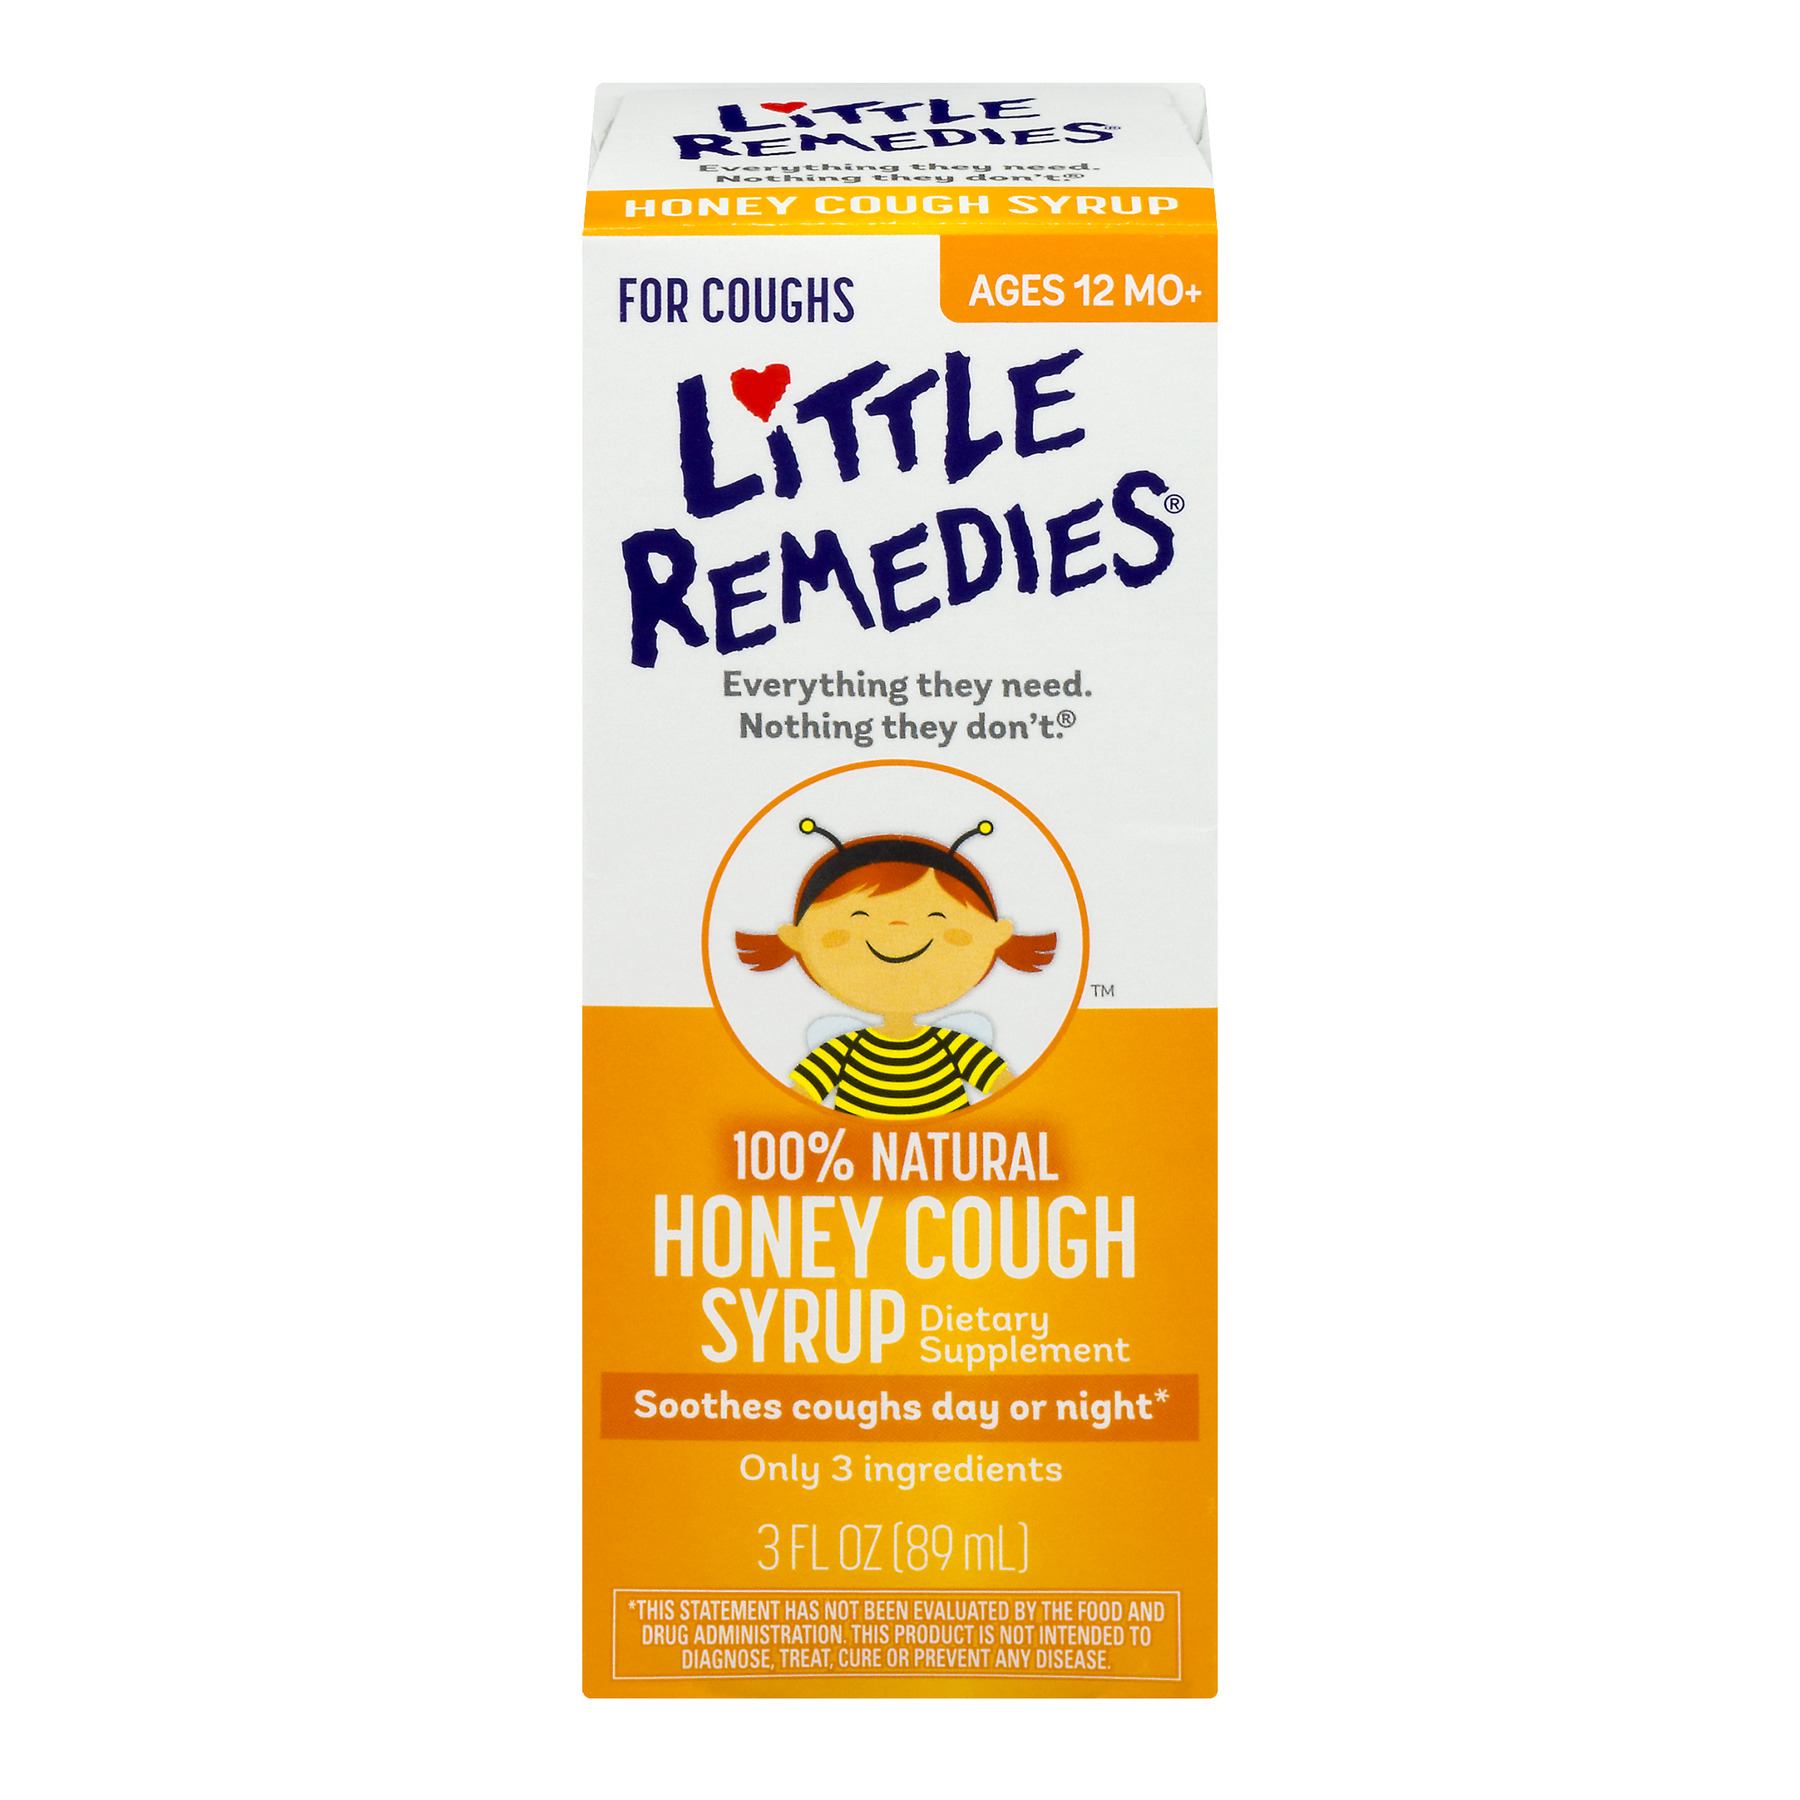 Little Remedies 100% Natural Honey Cough Syrup Dietary Supplement, 3.0 FL OZ